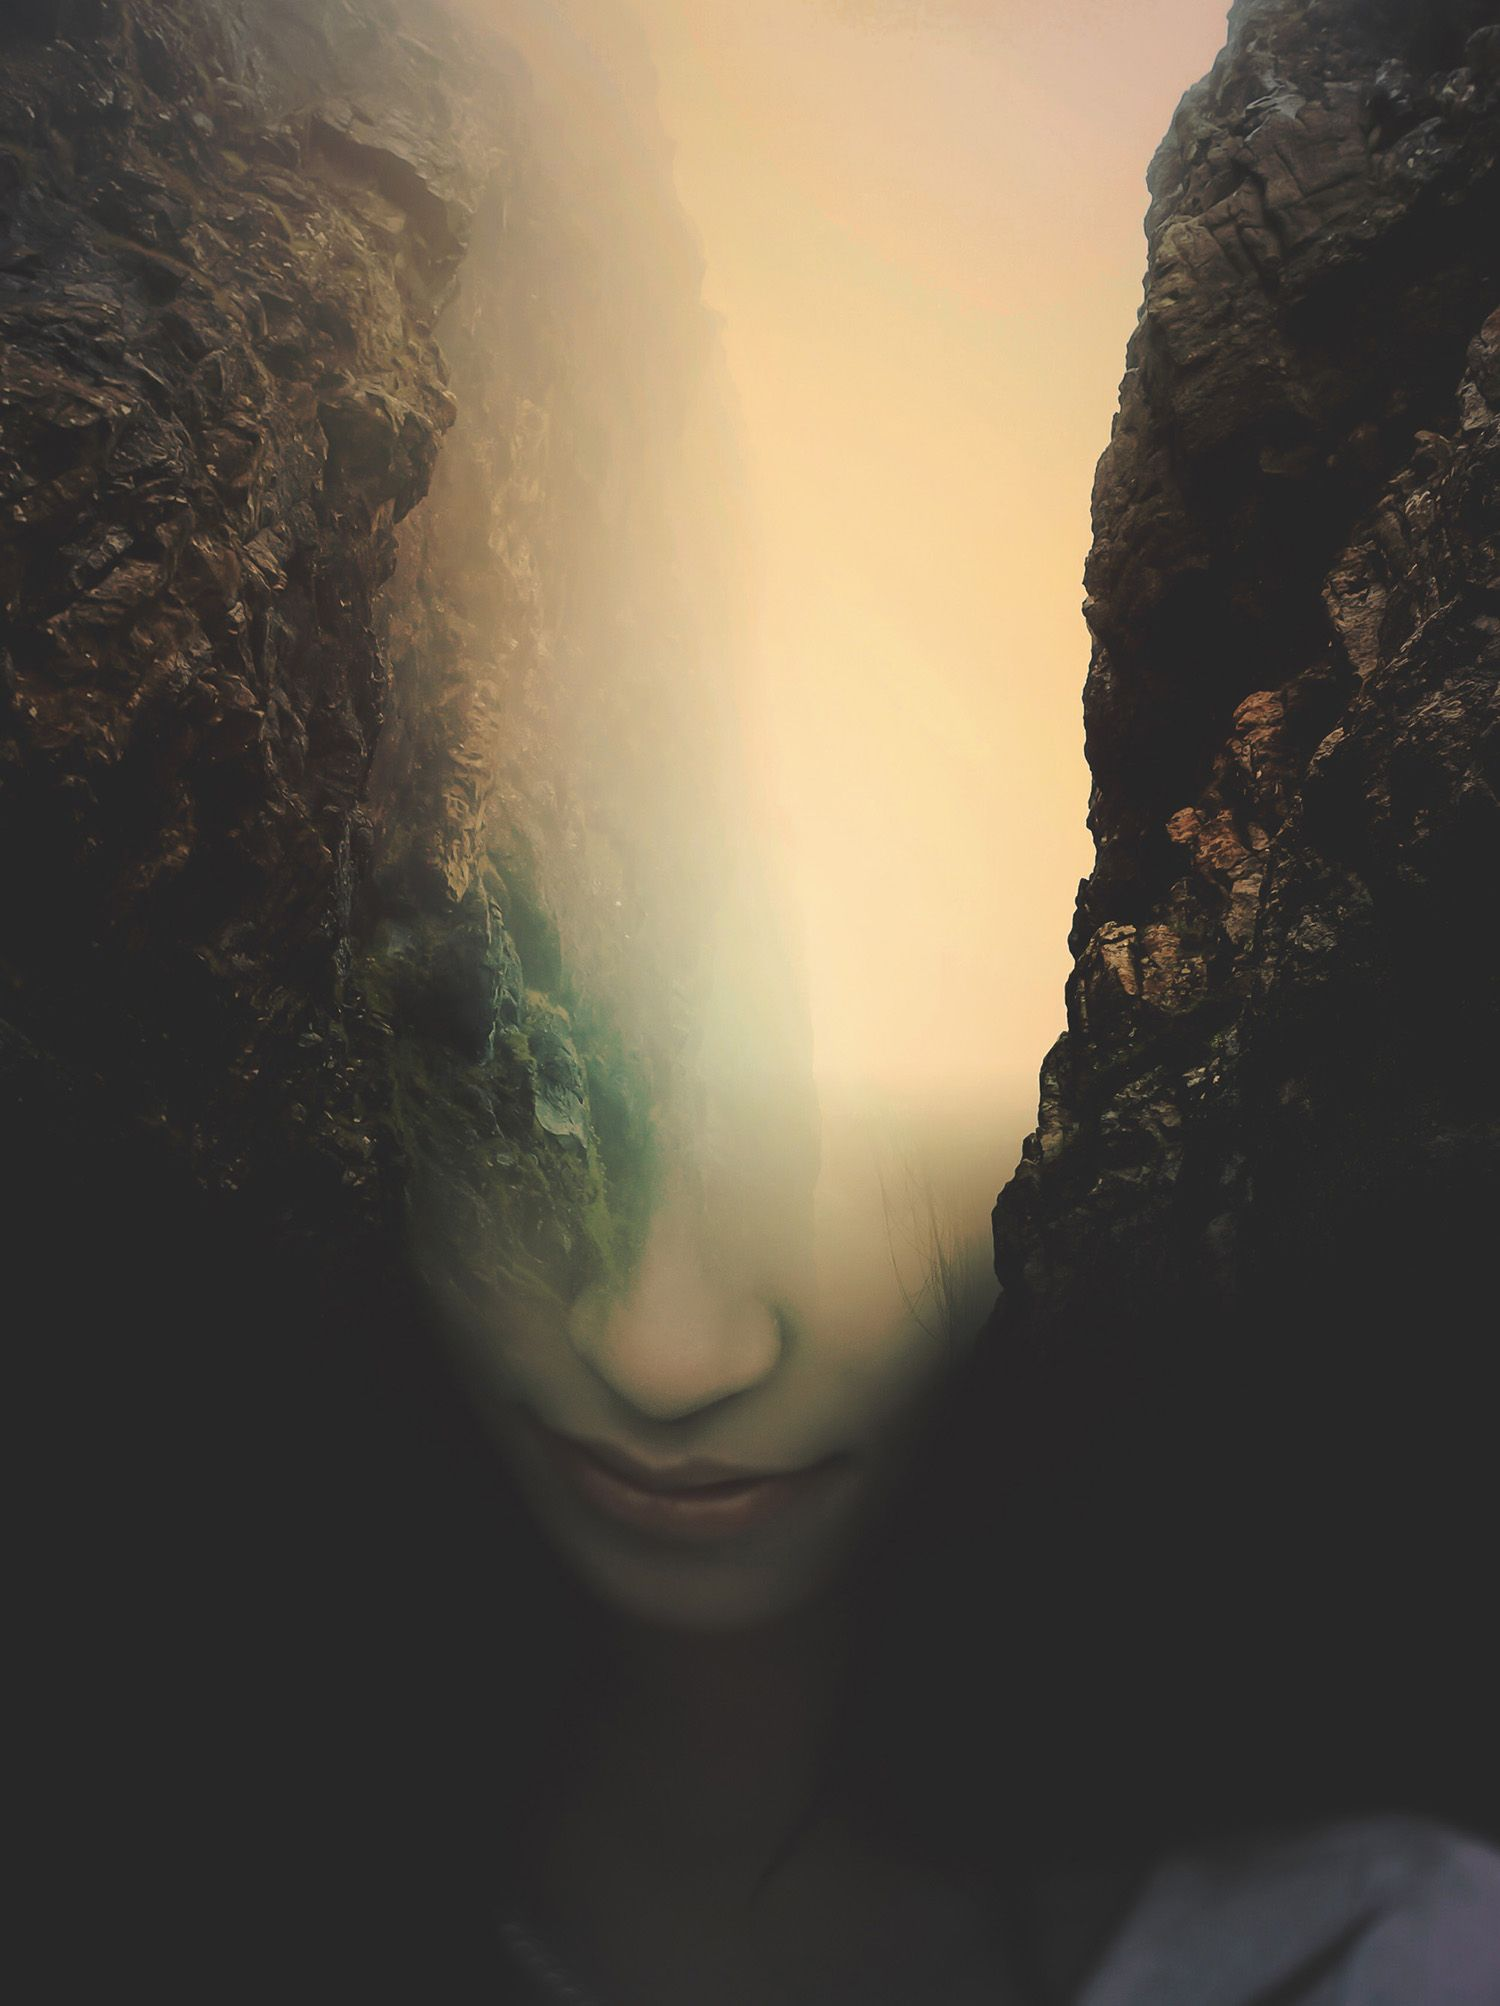 Chasm, digital art, collage, portrait, by Cash Mattock